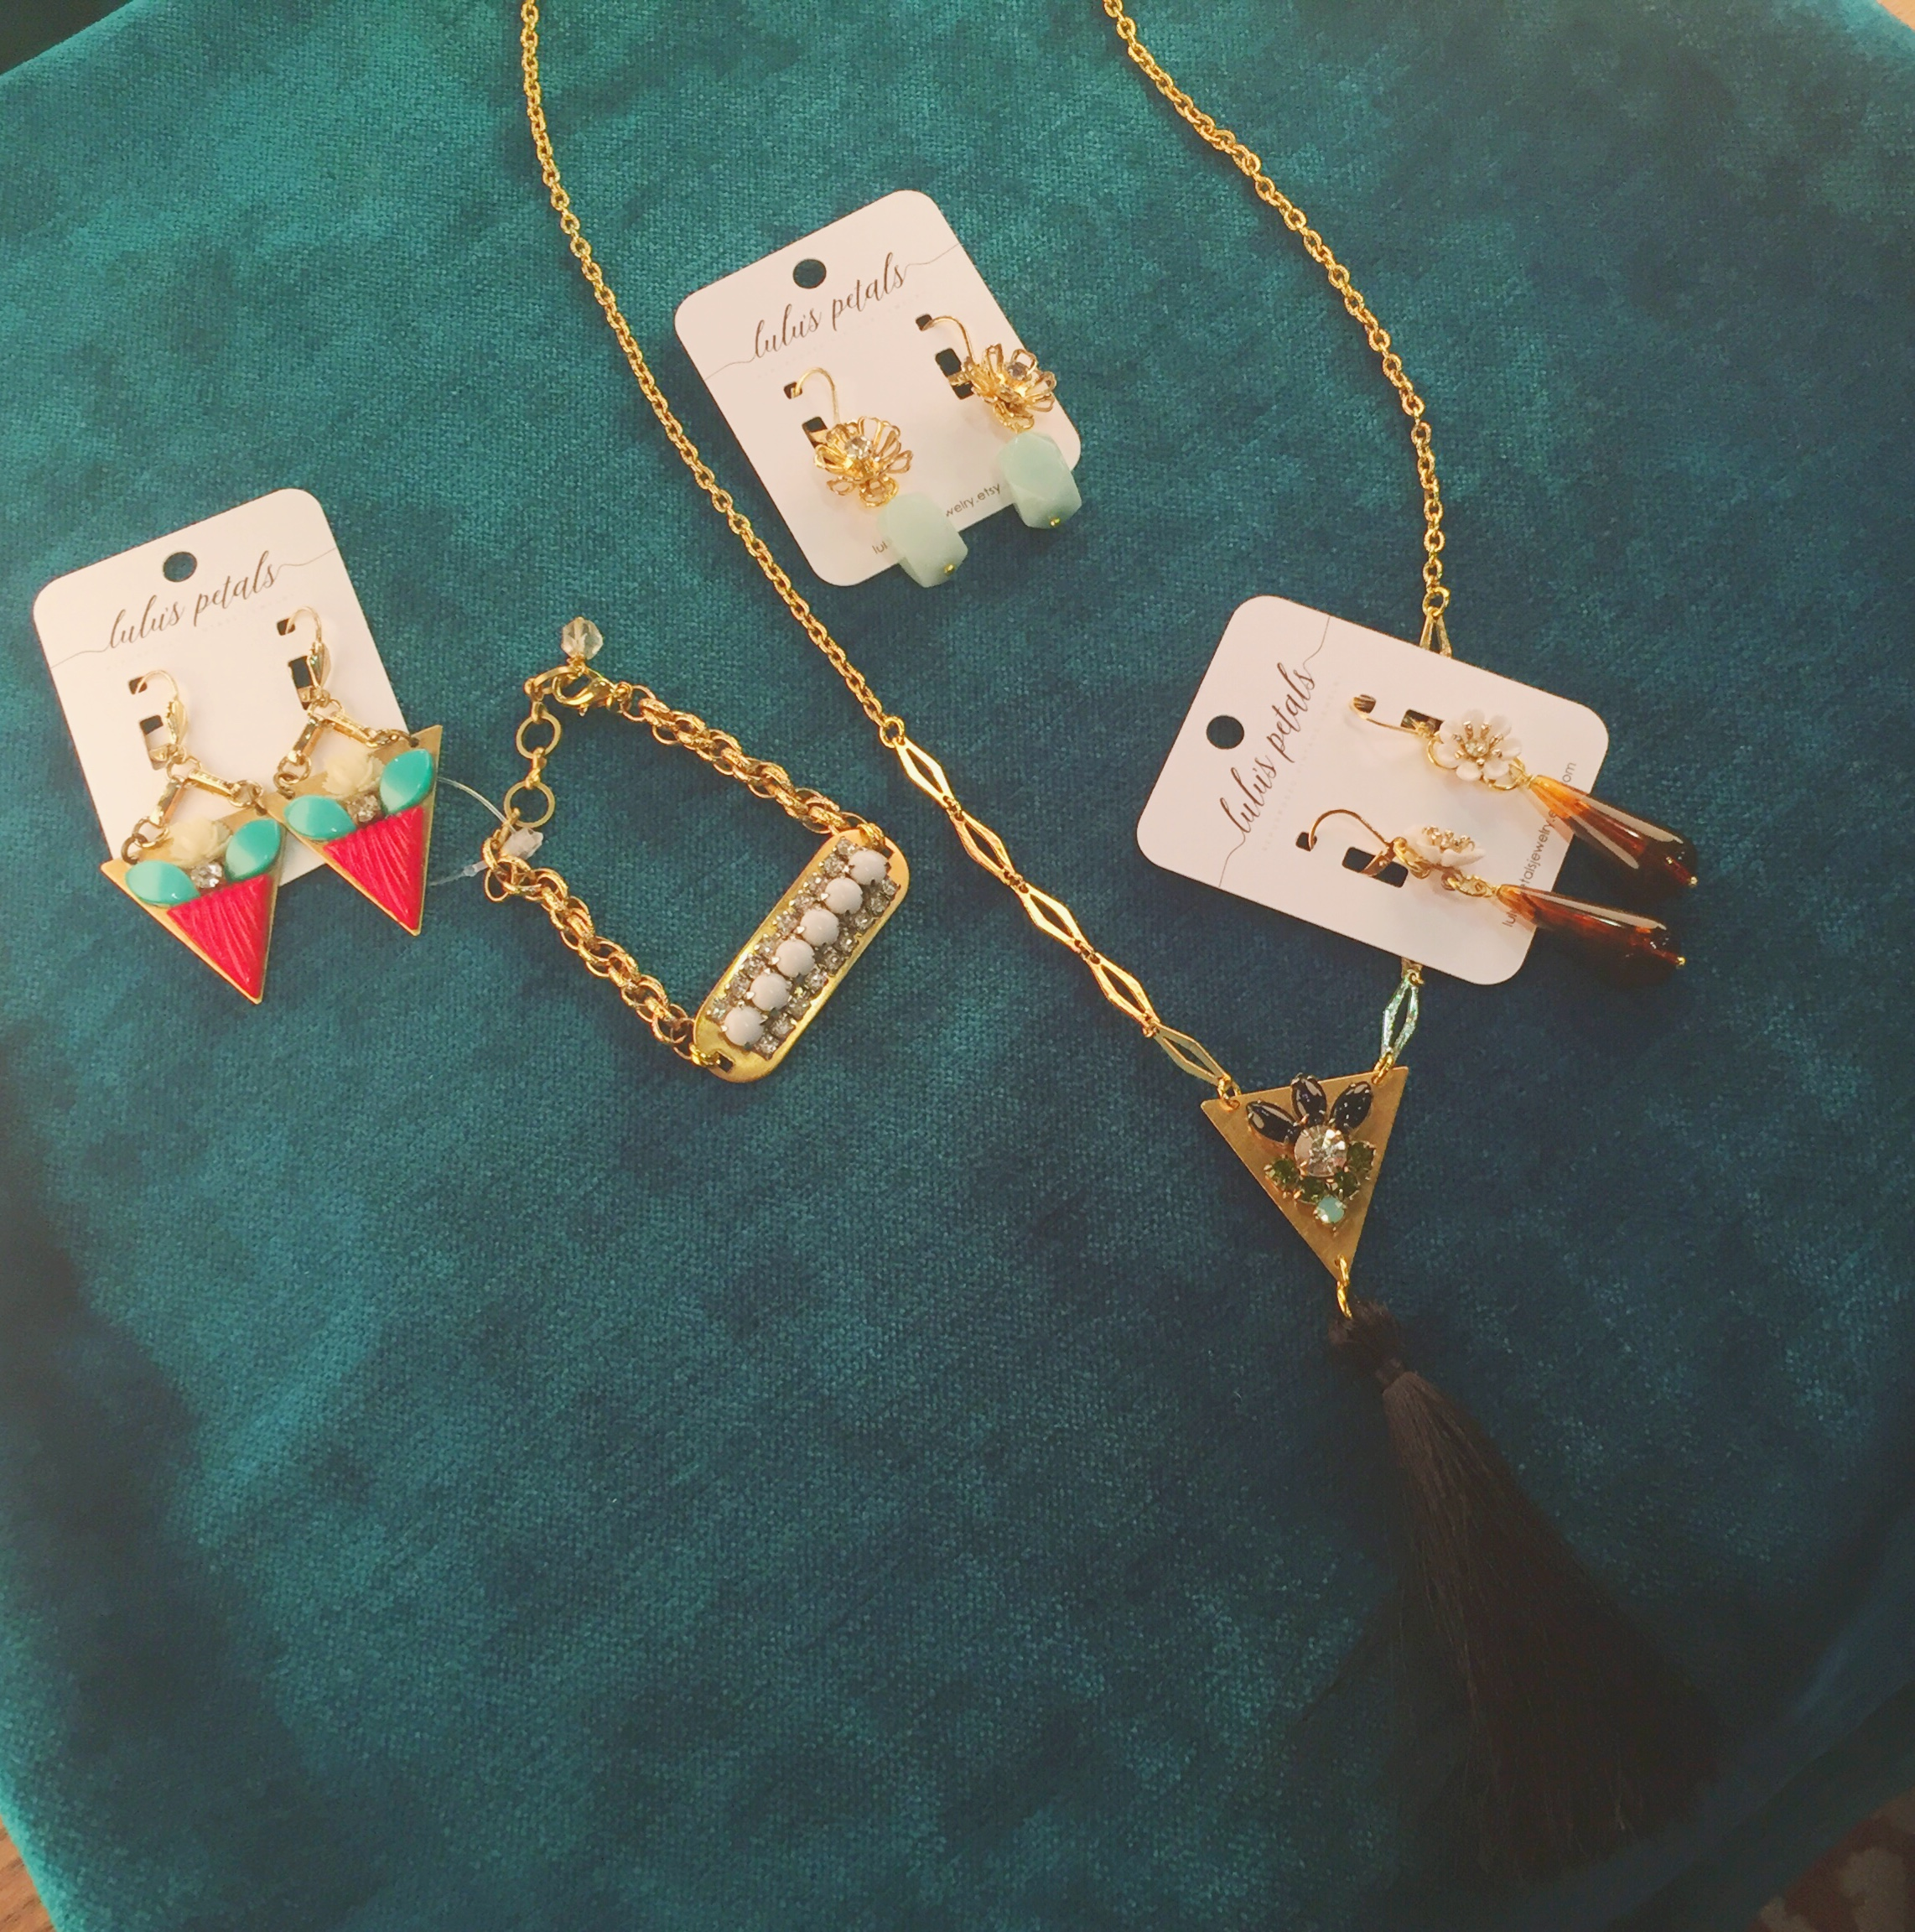 Earrings (from left to right): $42, $32, and $36; bracelet, $42; tassel necklace, $44